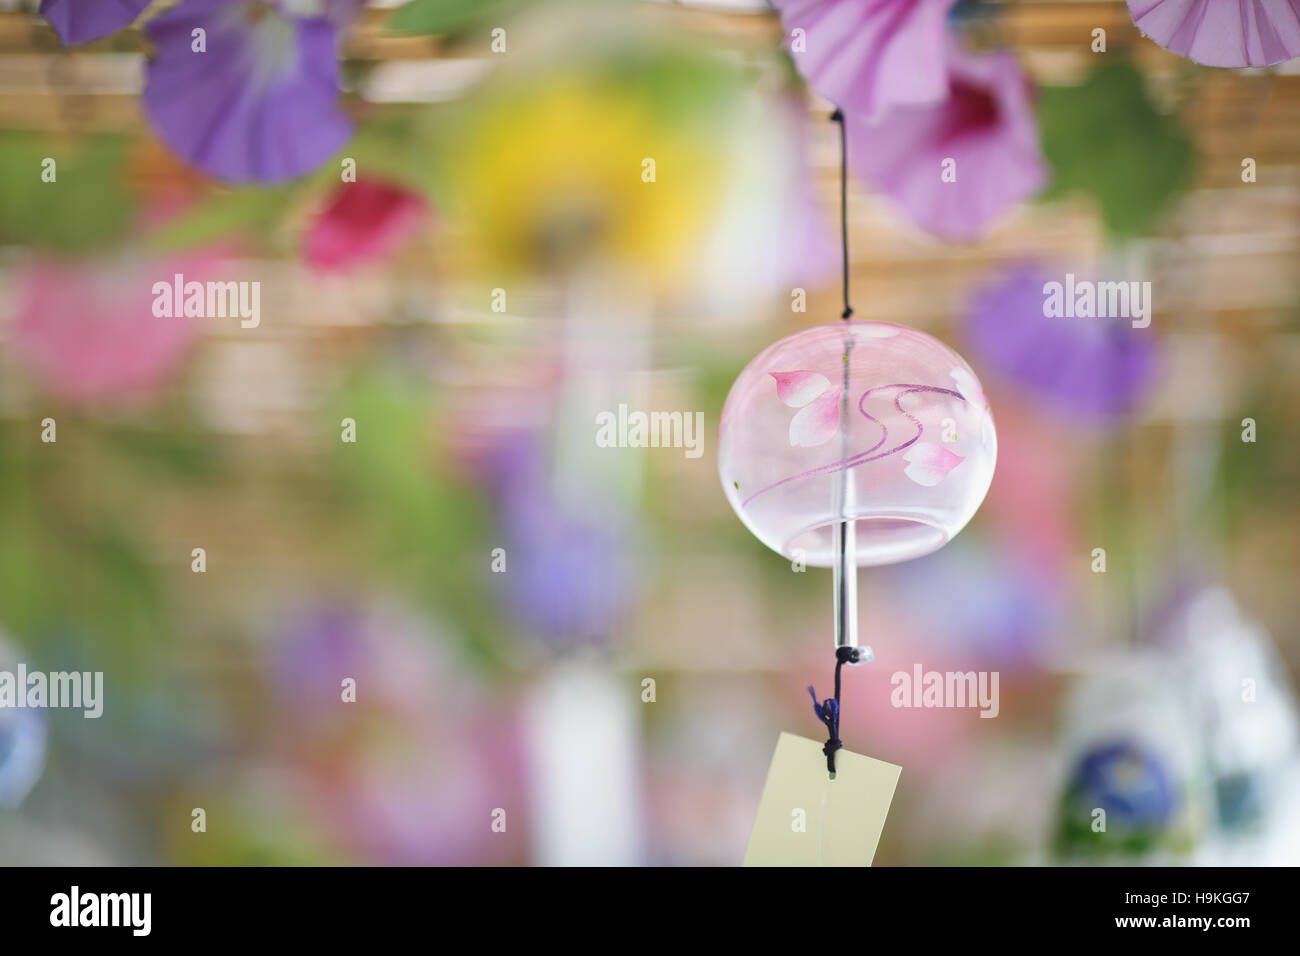 Japanese traditional wind chime - Stock Image